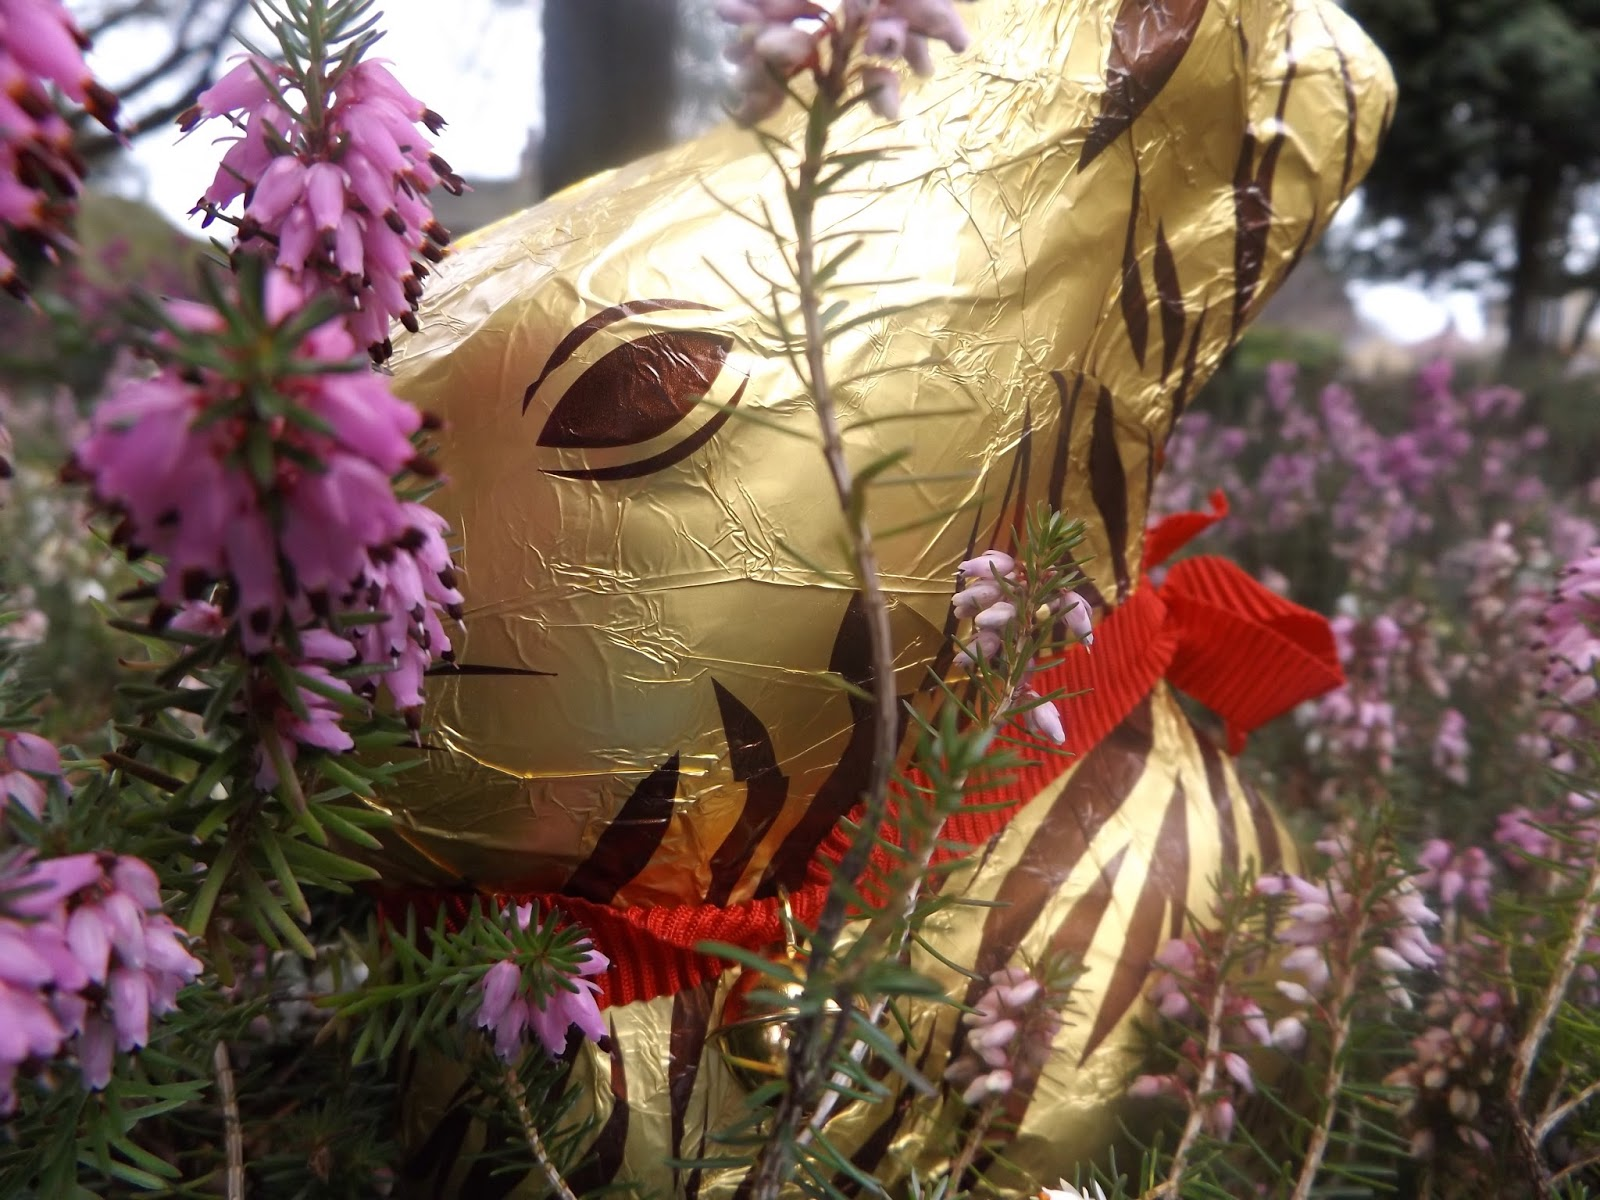 lindt chocolate bunny, big fashionista